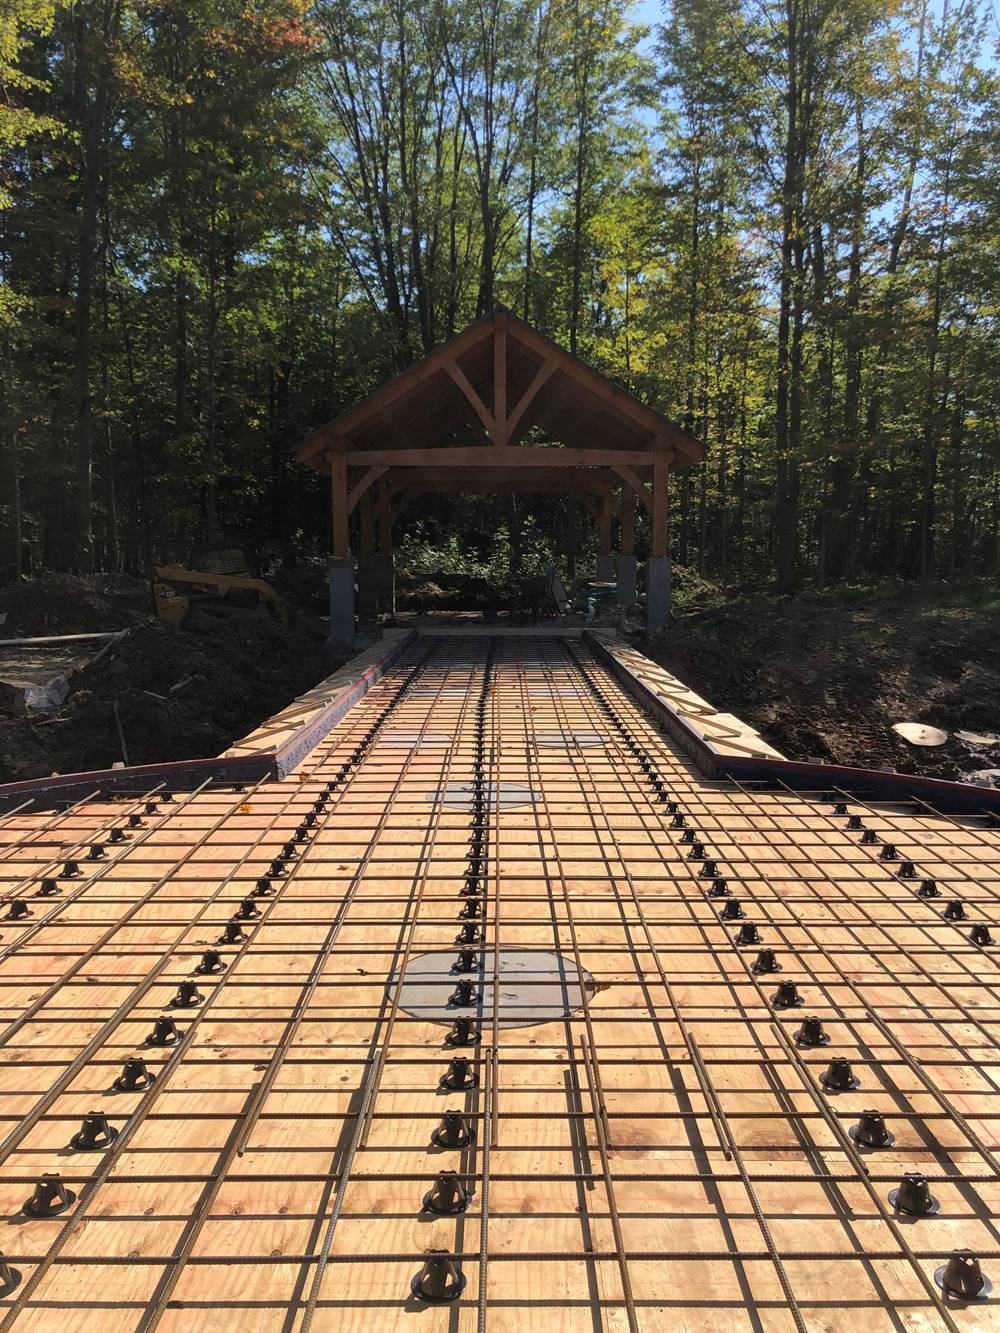 A rebar grid that was the footings for the custom stamped concrete dock